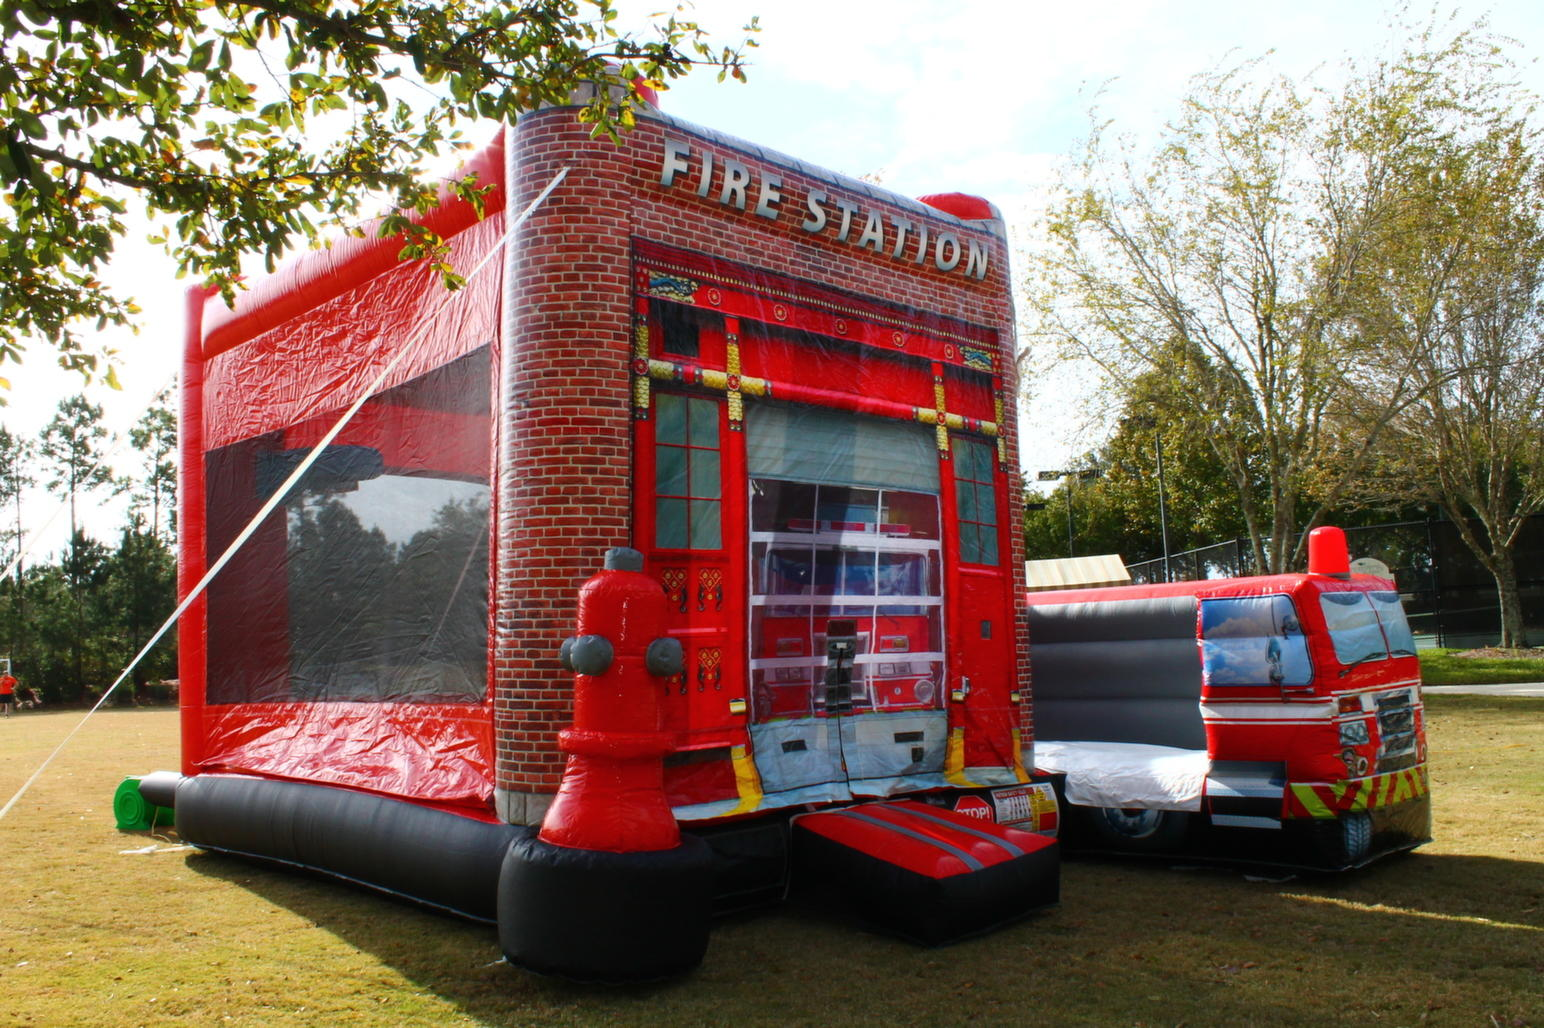 Rent the Fire Station 5-in-1 Combo for your next Touch Truck event or birthday party from Carolina Fun Factory